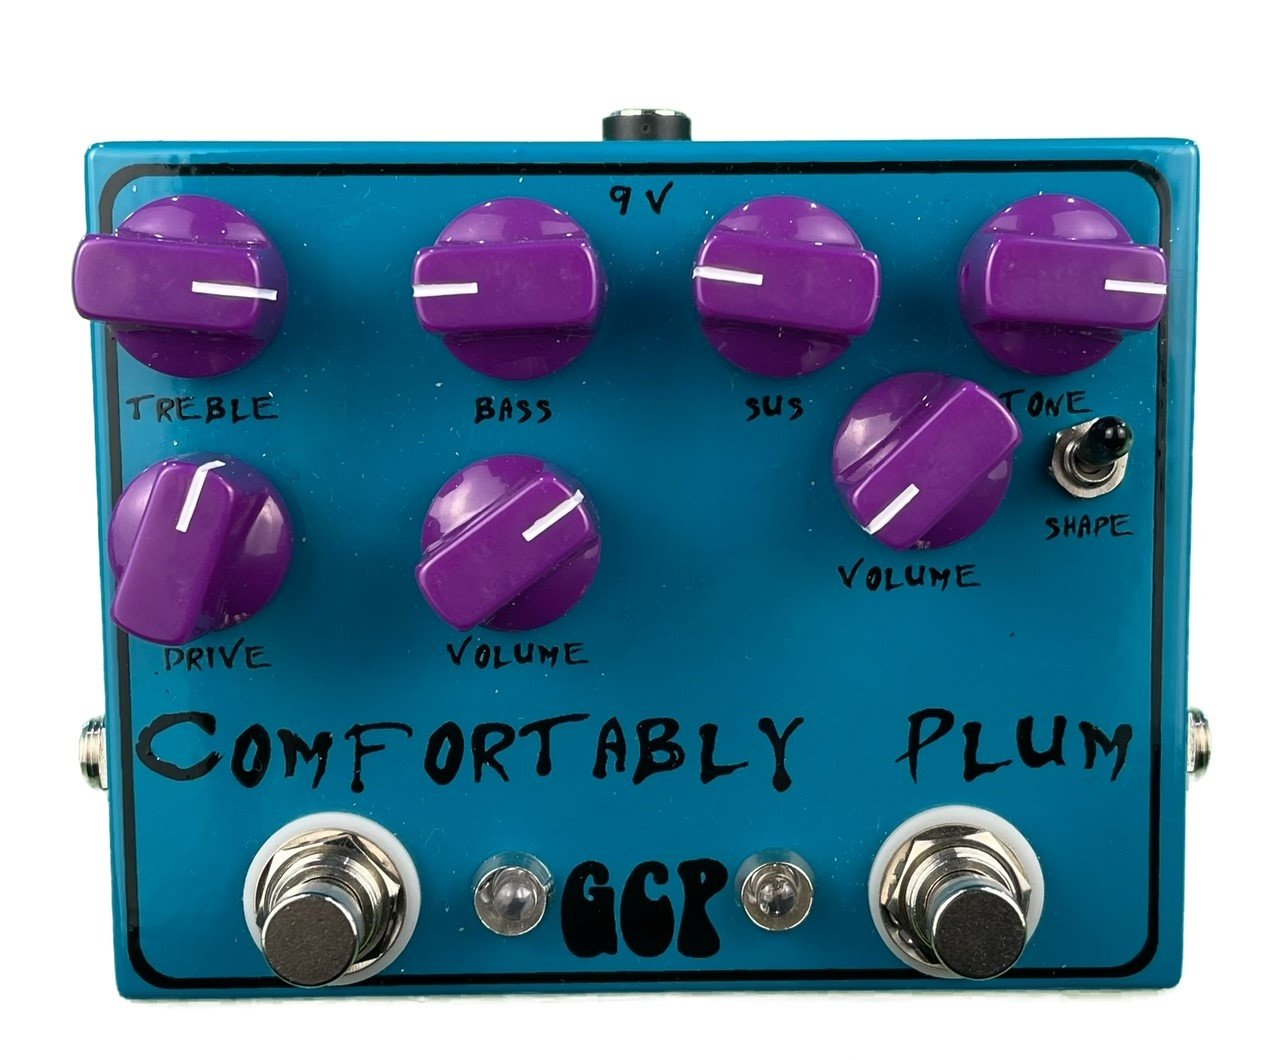 Green Carrot Pedals Comfortably Plum Pedal in Excellent Condition